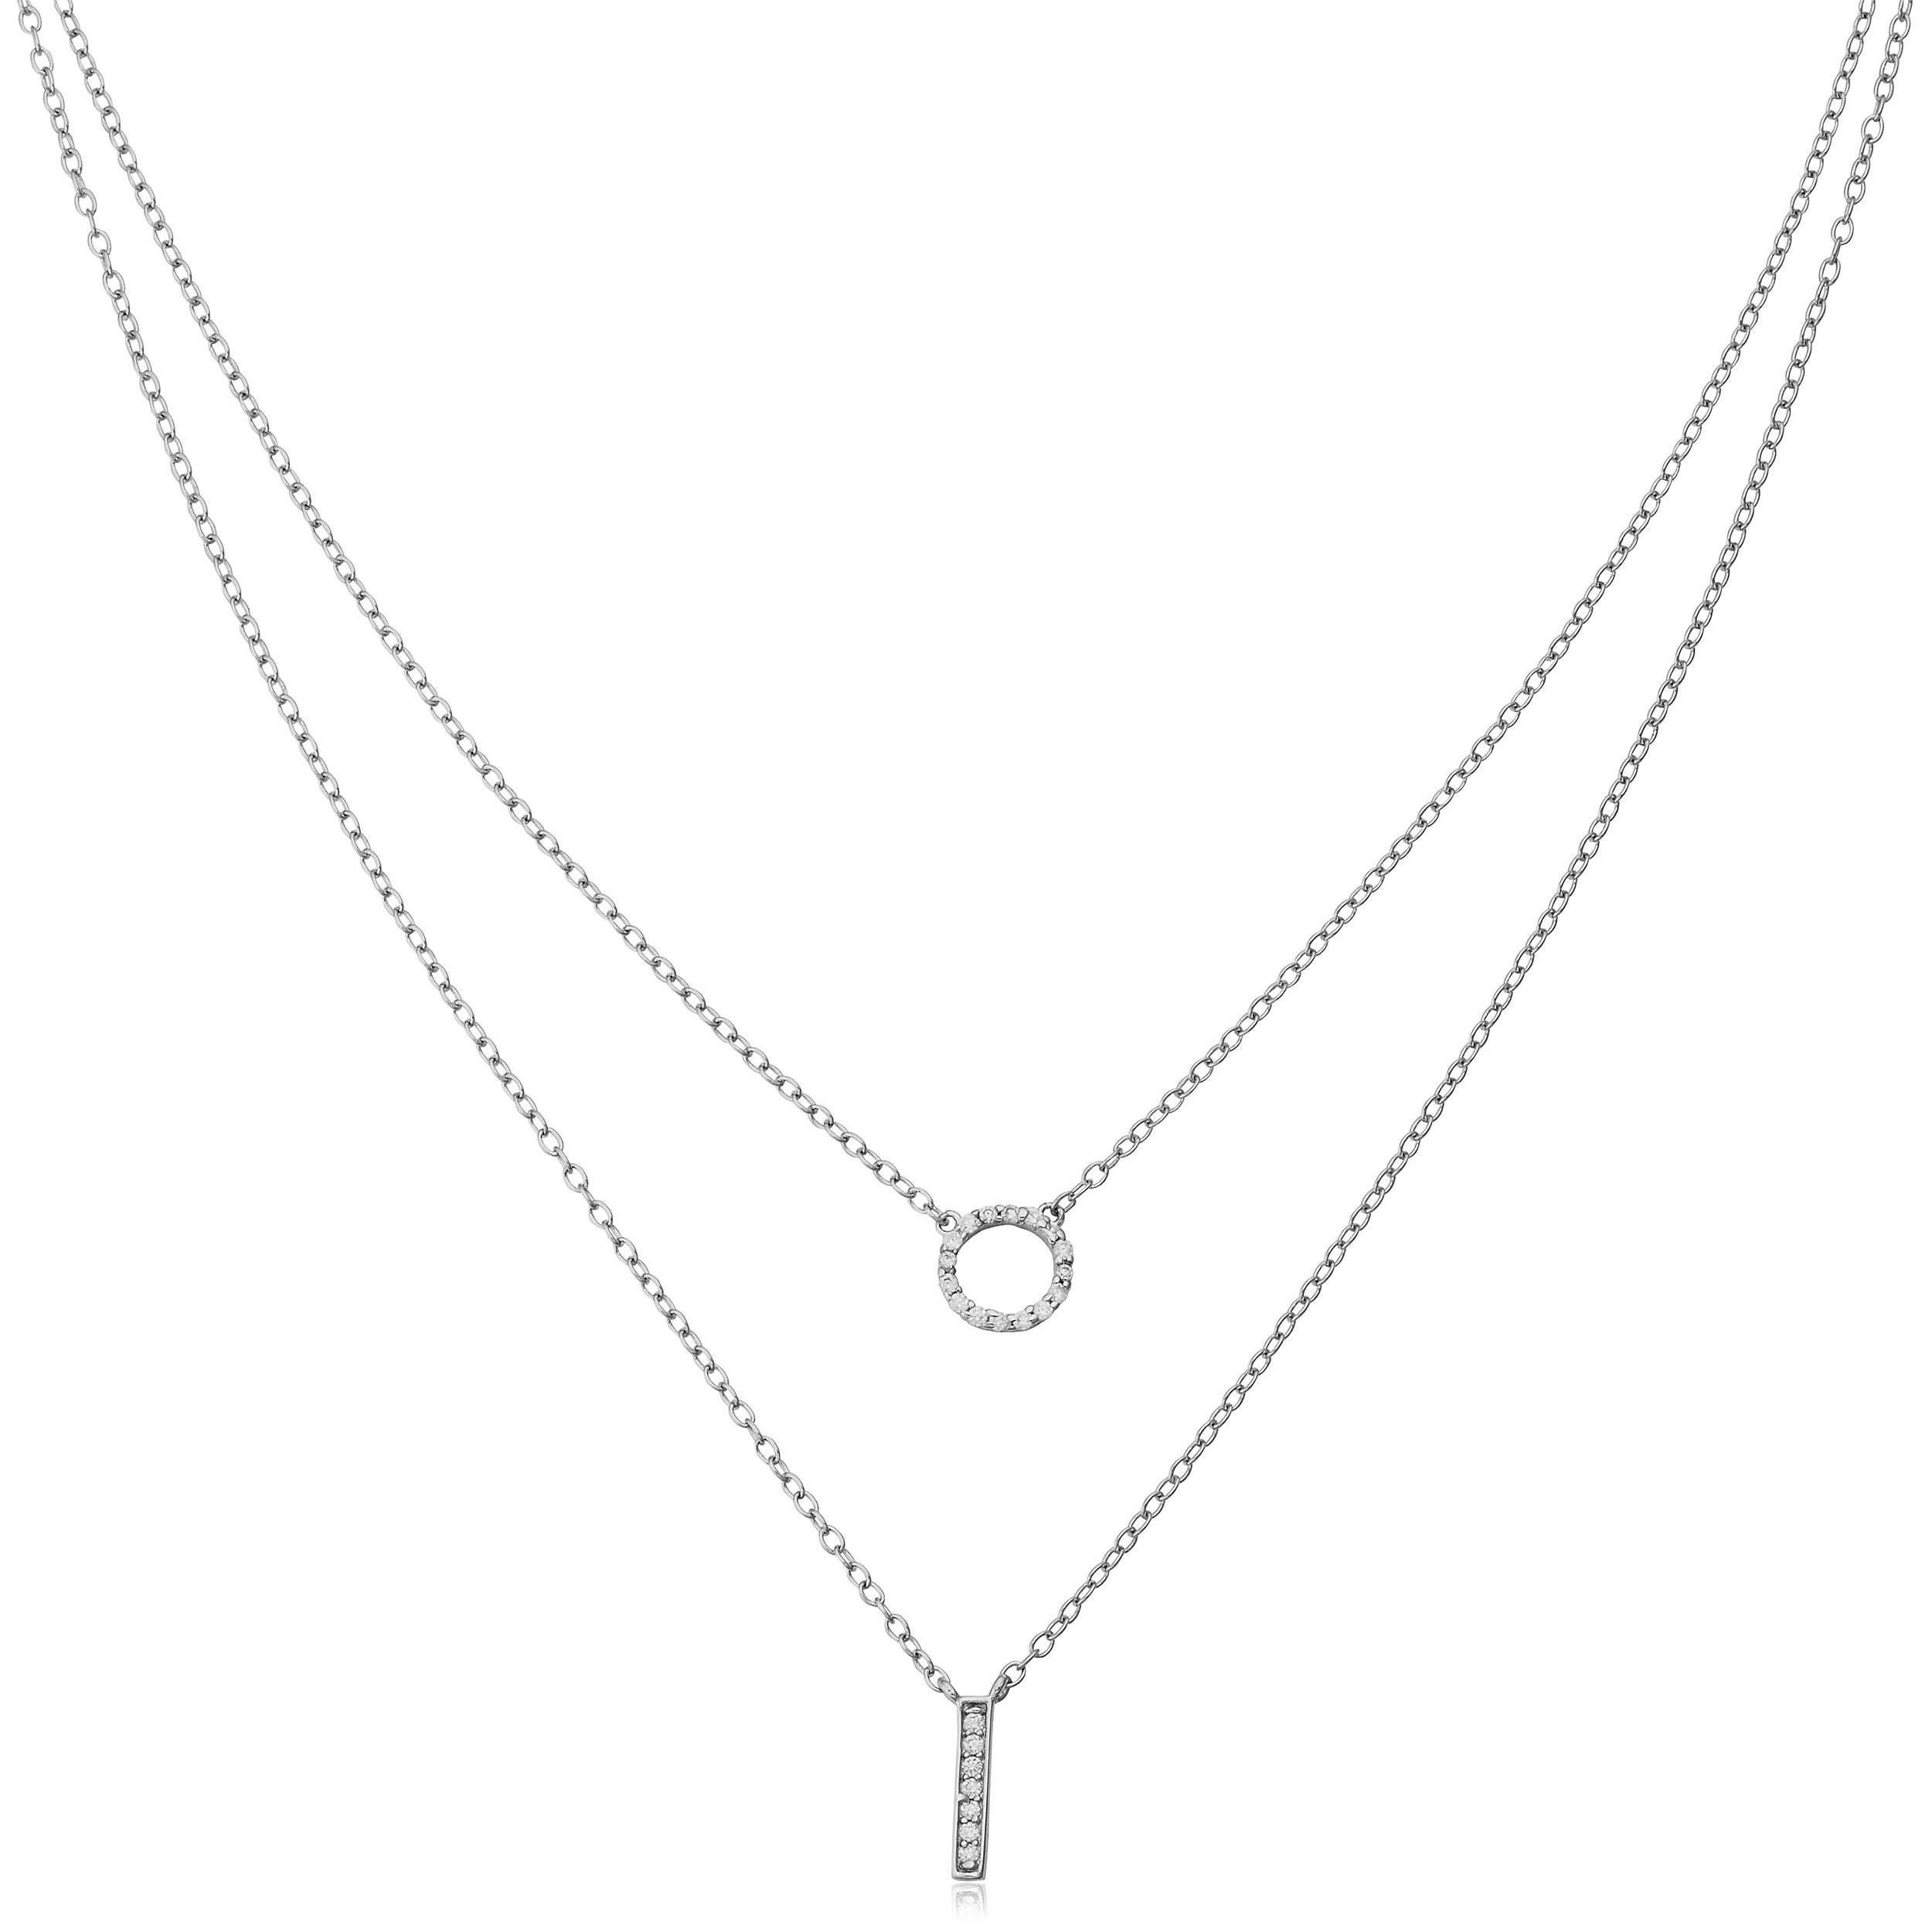 AMDXD Jewelry Silver Plated Women Necklace White Gold Wheat Cubic Ziconia,as Best Gift for Girl